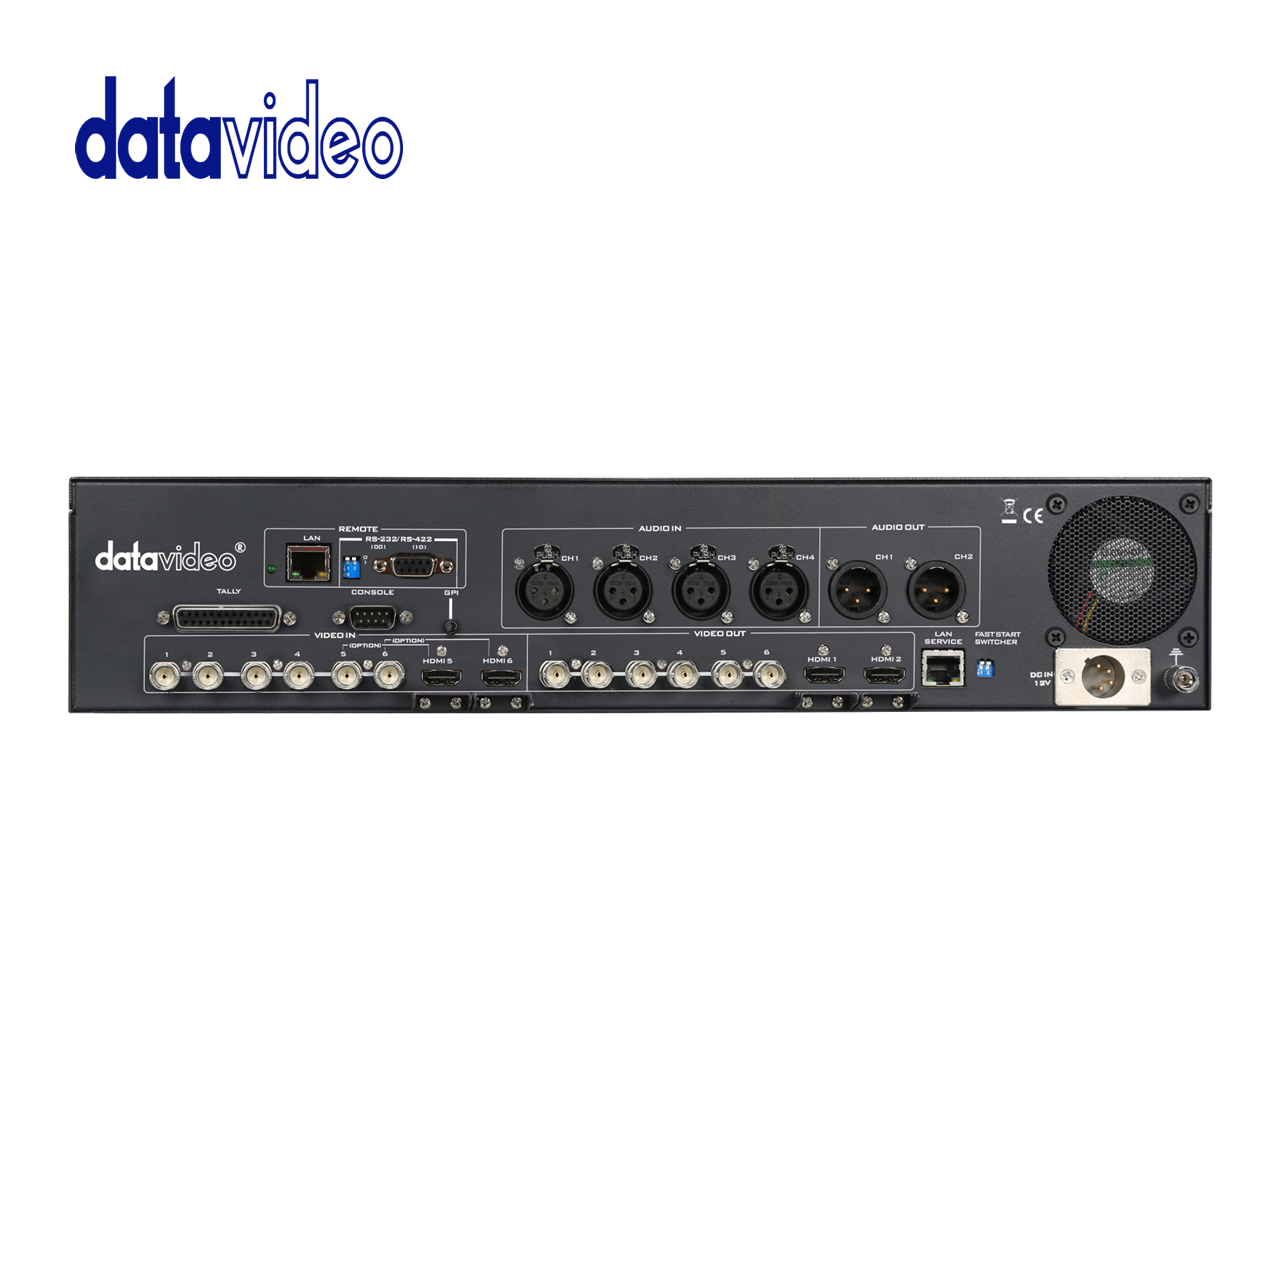 Datavideo SE-2200 / 6 Input HD Broadcast Quality Switcher Pro Video Data Video